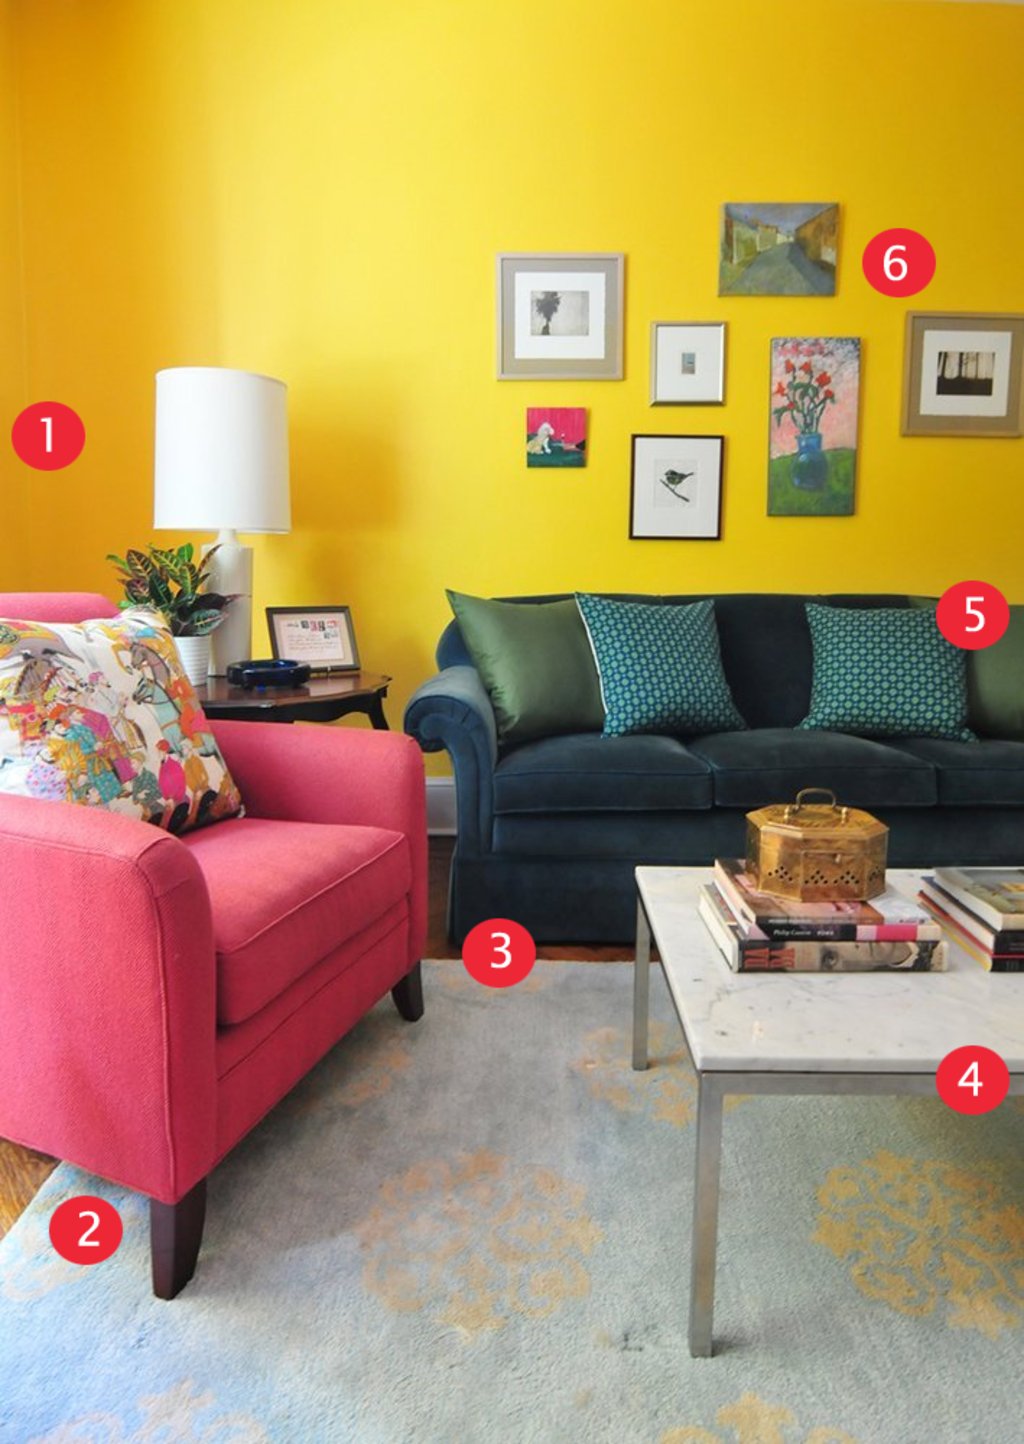 7 Small Bedroom Designs By Professional Experts: Why This Room Works: 6 Expert Color Mixing Tips To Steal